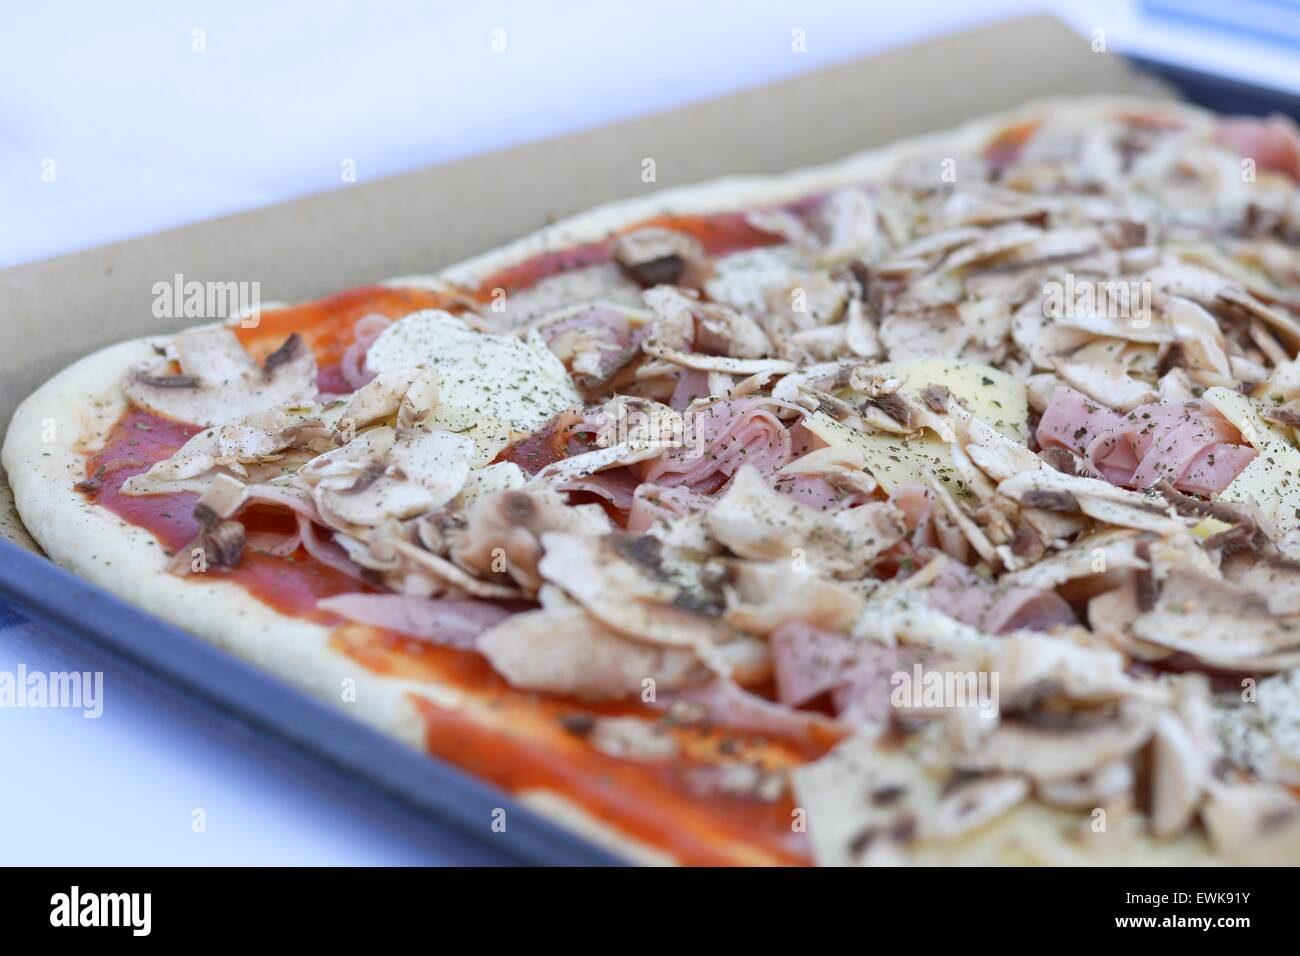 Unbaked pizza - Stock Image